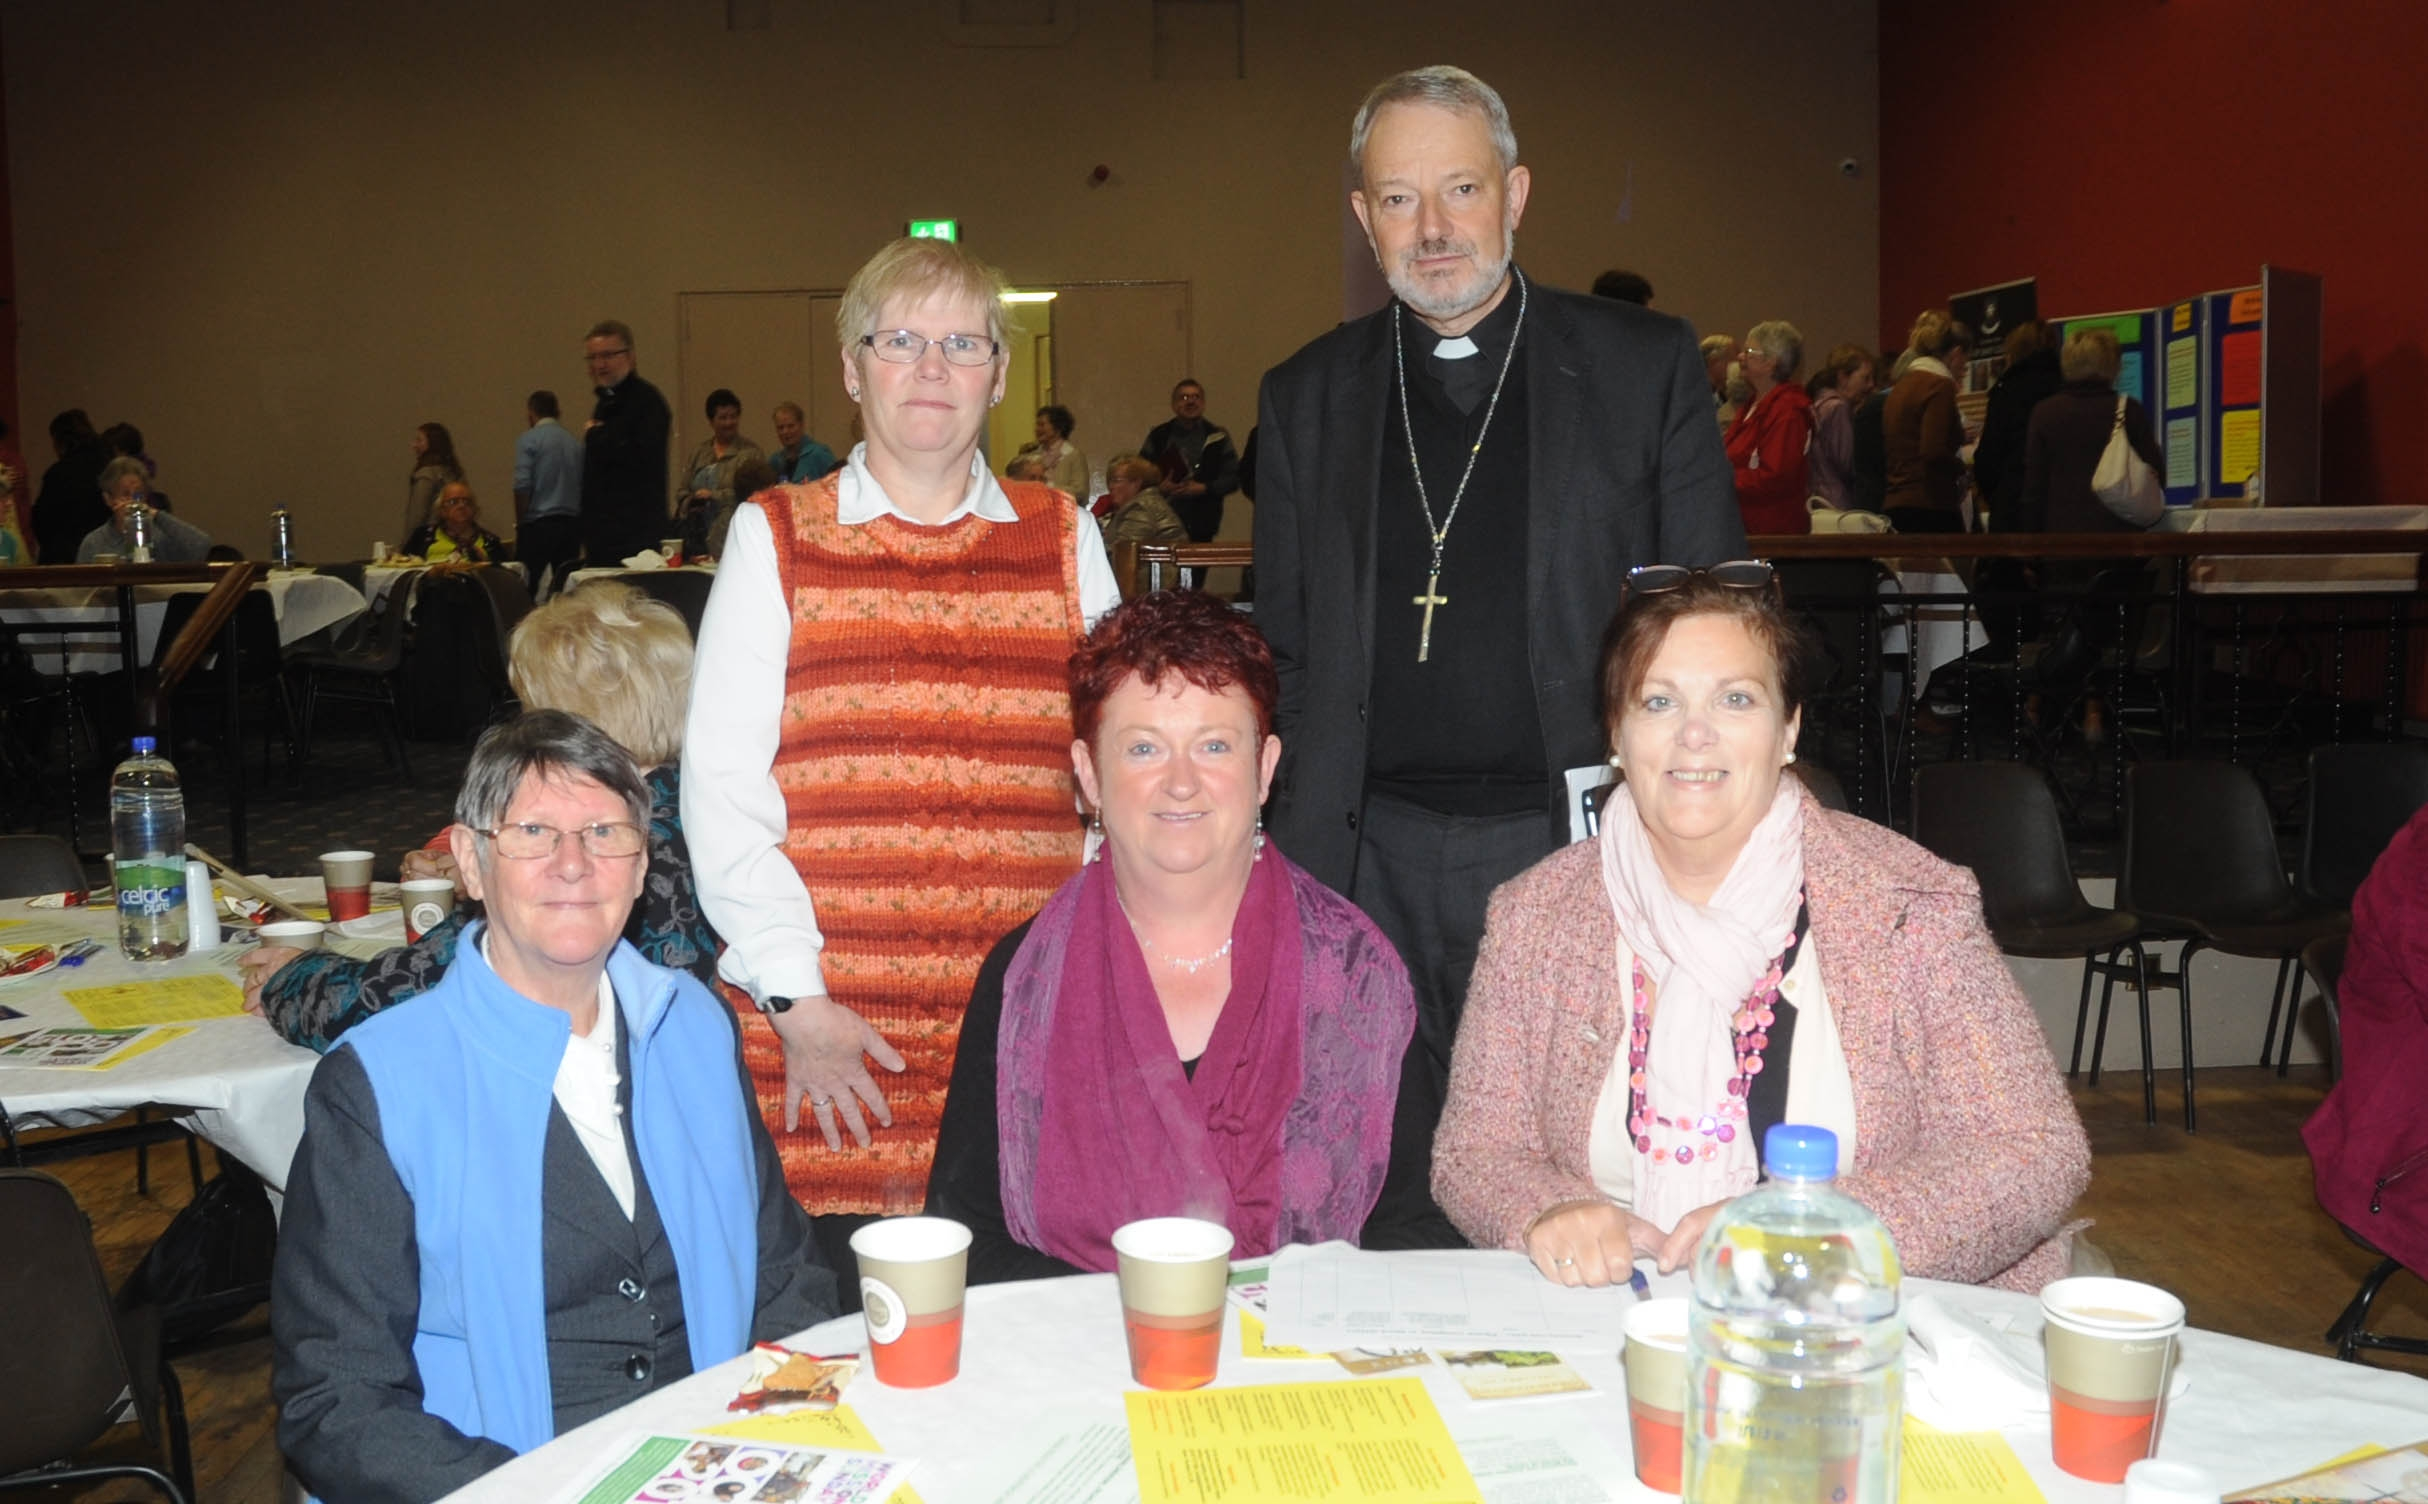 Hilary Finnegan, Eileen Grady, Marie Barlow, Sharon Timothy, Bishop K.Doran